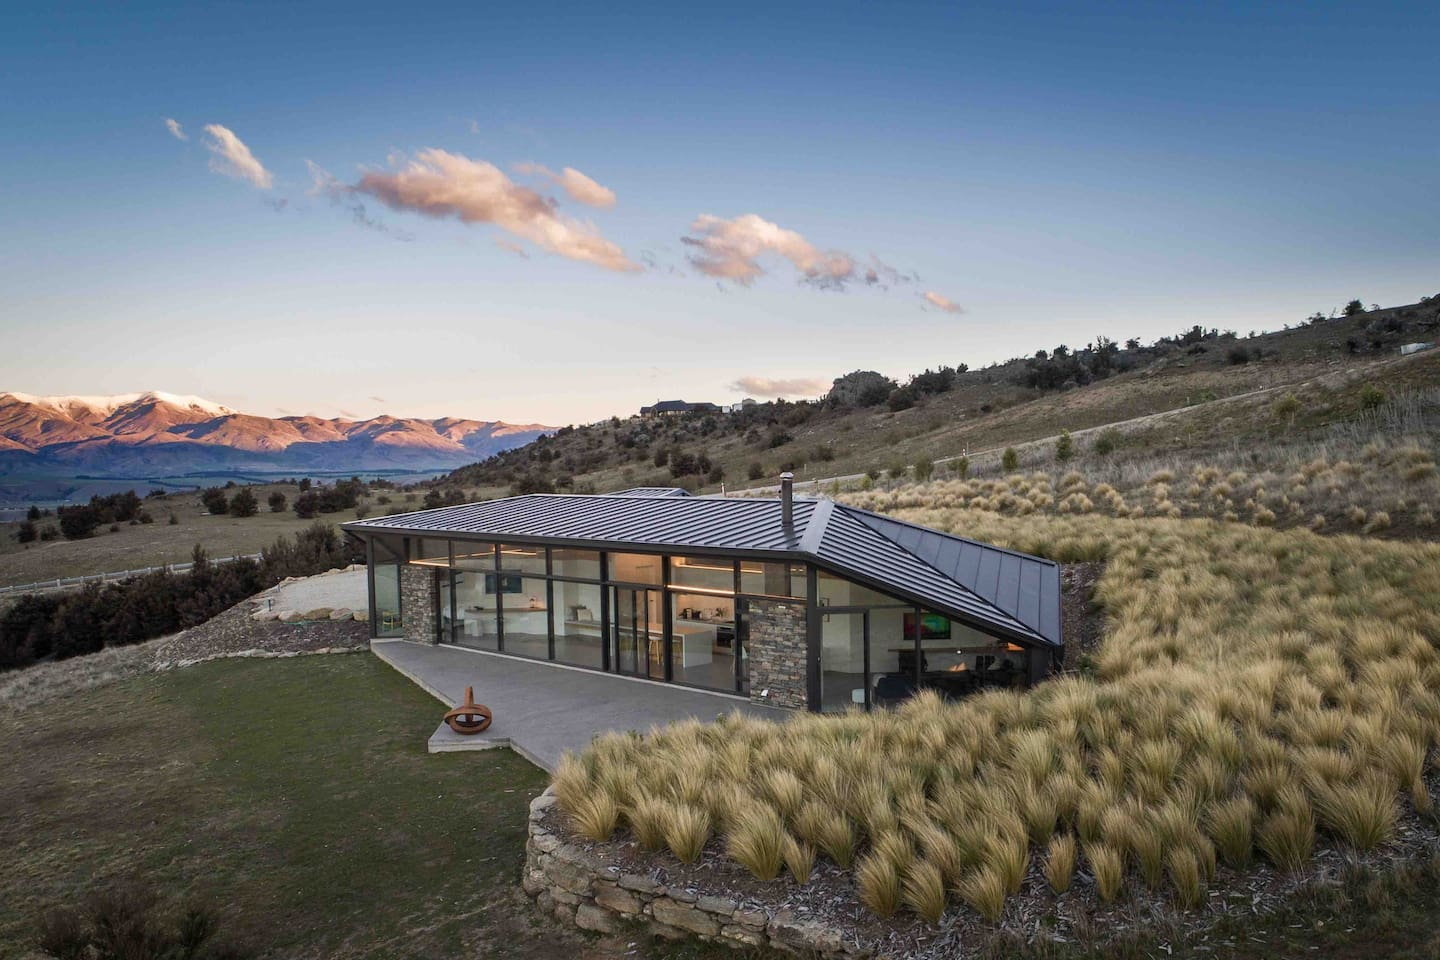 The Hawk House - Rangi Kahu (Sky of Hawks) in Maori - has just won four Master Builder awards, including the Supreme House of the Year 2019 for the Southern region. Its design mimics hawk wings and the mountain folds across the beautiful valley.